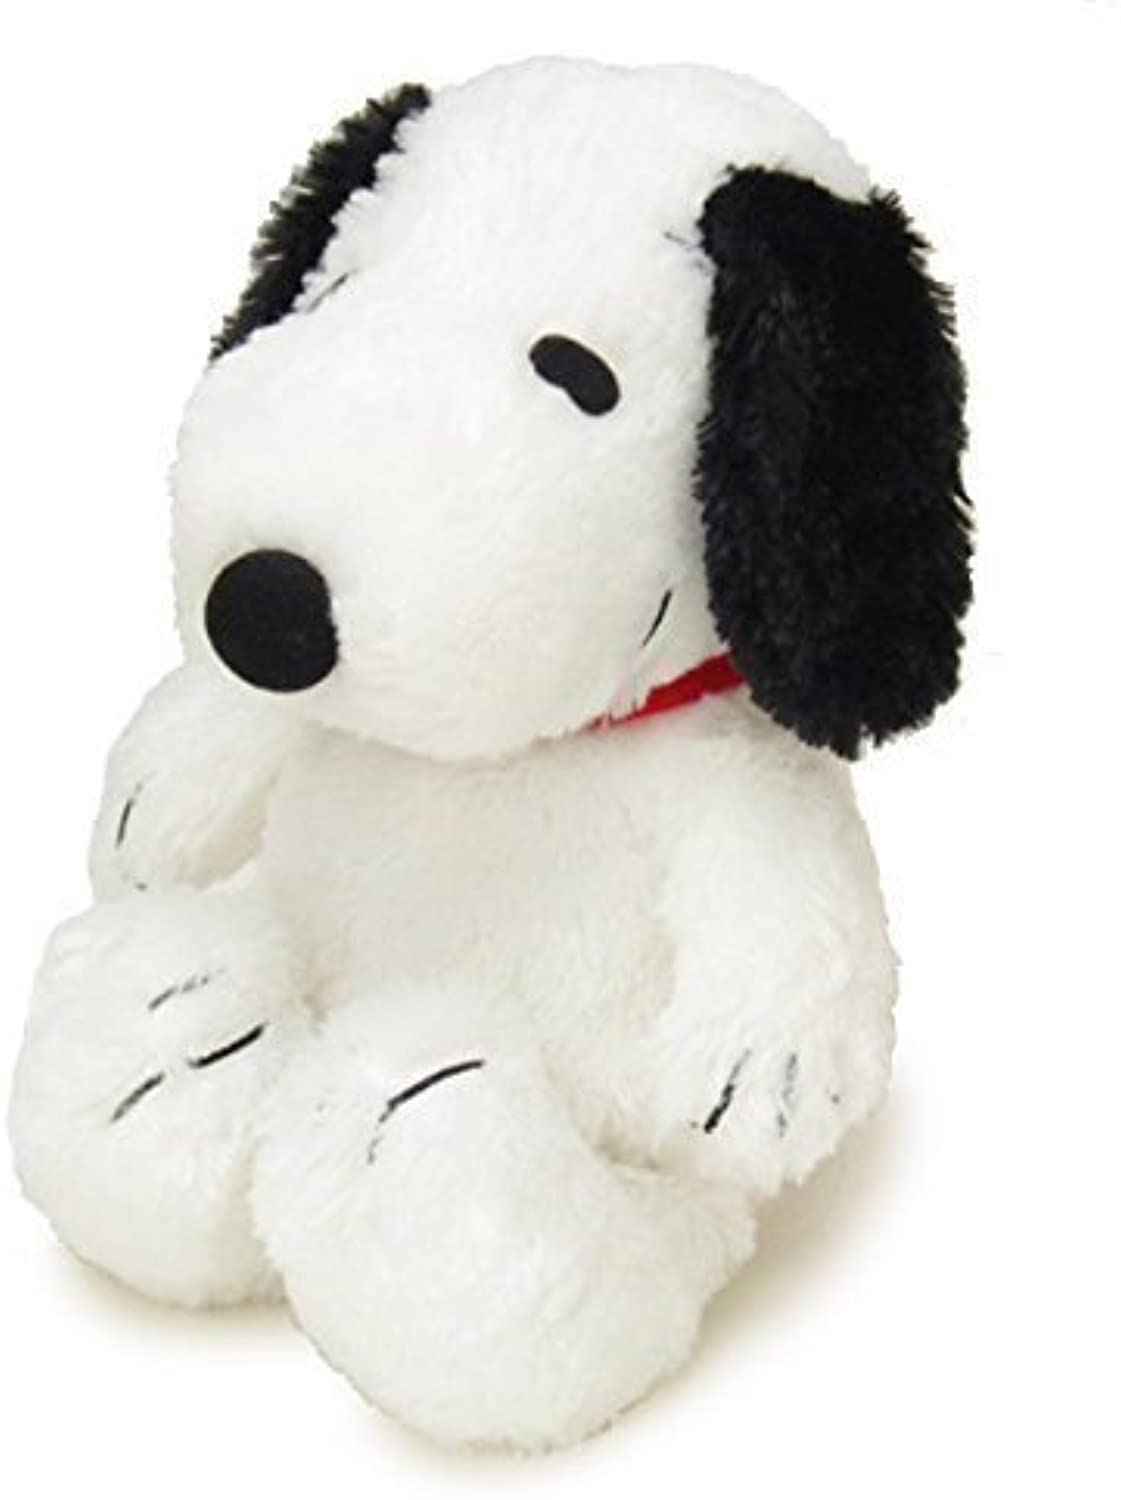 PEANUTS Peanuts Snoopy Pafupafu stuffed S sitting height 20cm black